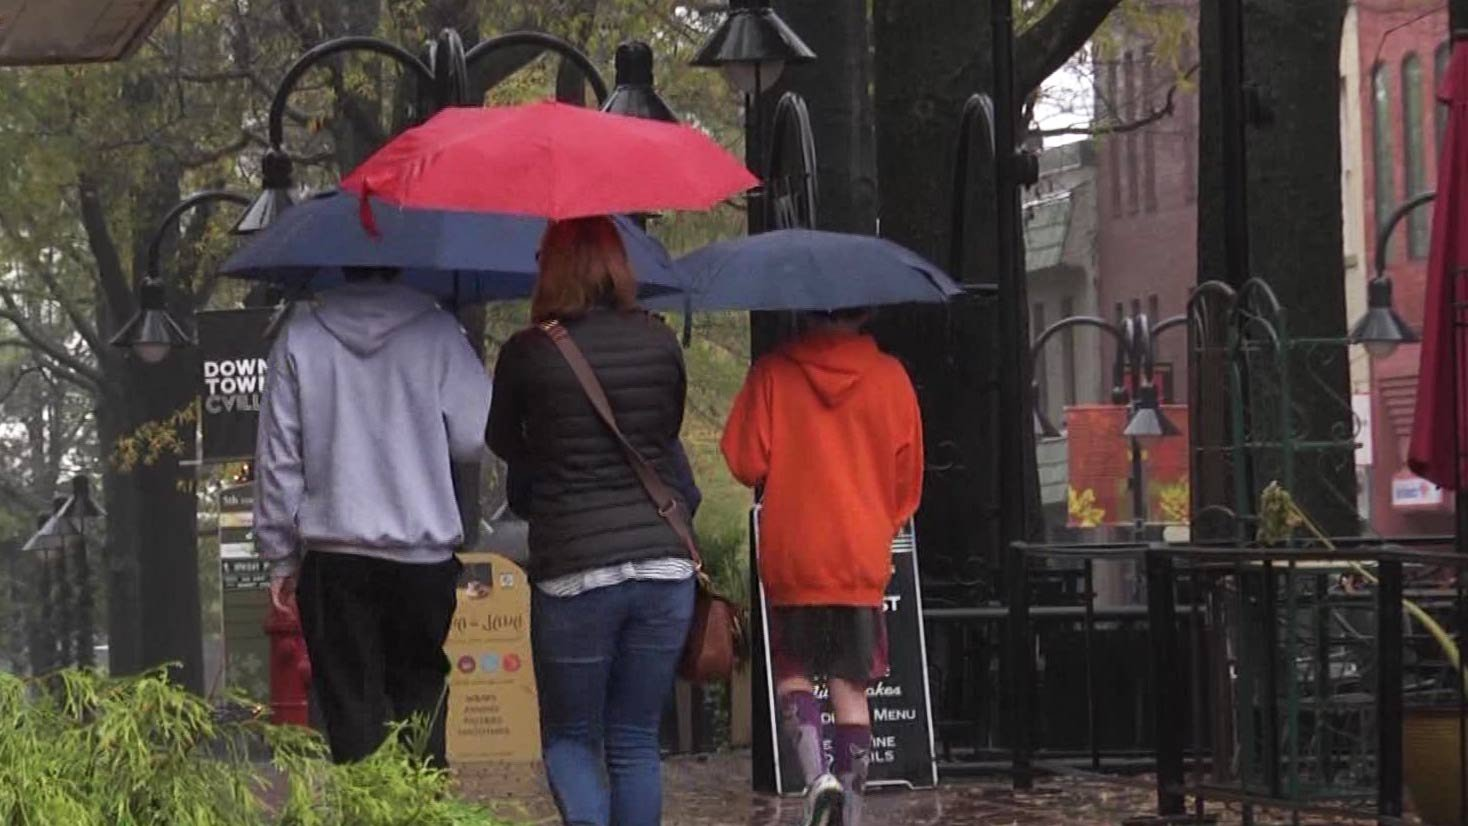 Downtown Mall customers braving the dreary weather.